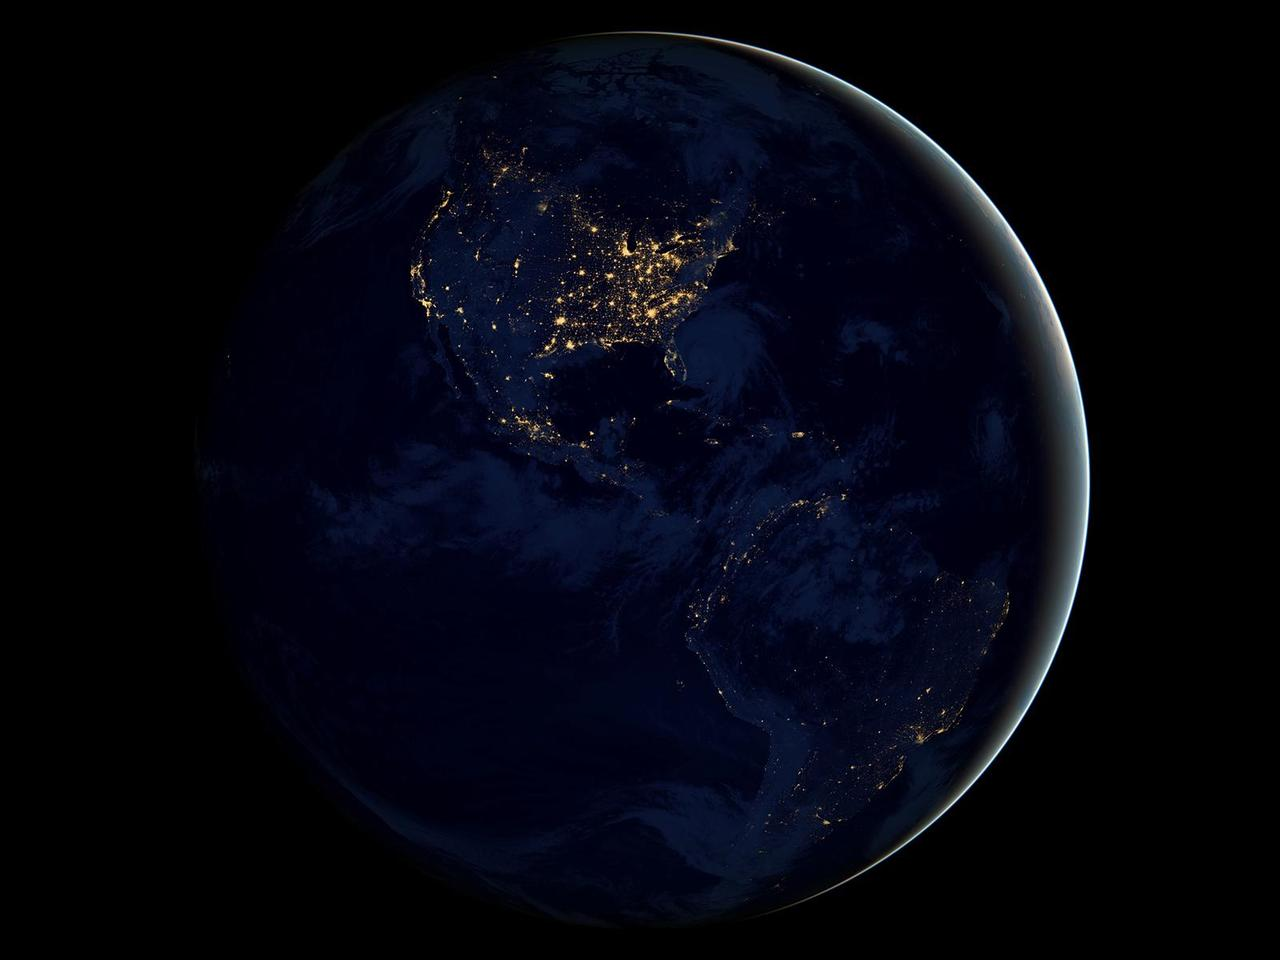 Image description: This new global view of Earth's city lights is a composite assembled from data acquired by the Suomi National Polar-orbiting Partnership (NPP) satellite. The data was acquired over nine days in April 2012 and 13 days in October 2012. It took 312 orbits to get a clear shot of every parcel of Earth's land surface and islands. This new data was then mapped over existing Blue Marble imagery of Earth to provide a realistic view of the planet. View a larger image. Image from NASA's Earth Observatory/NOAA/DOD